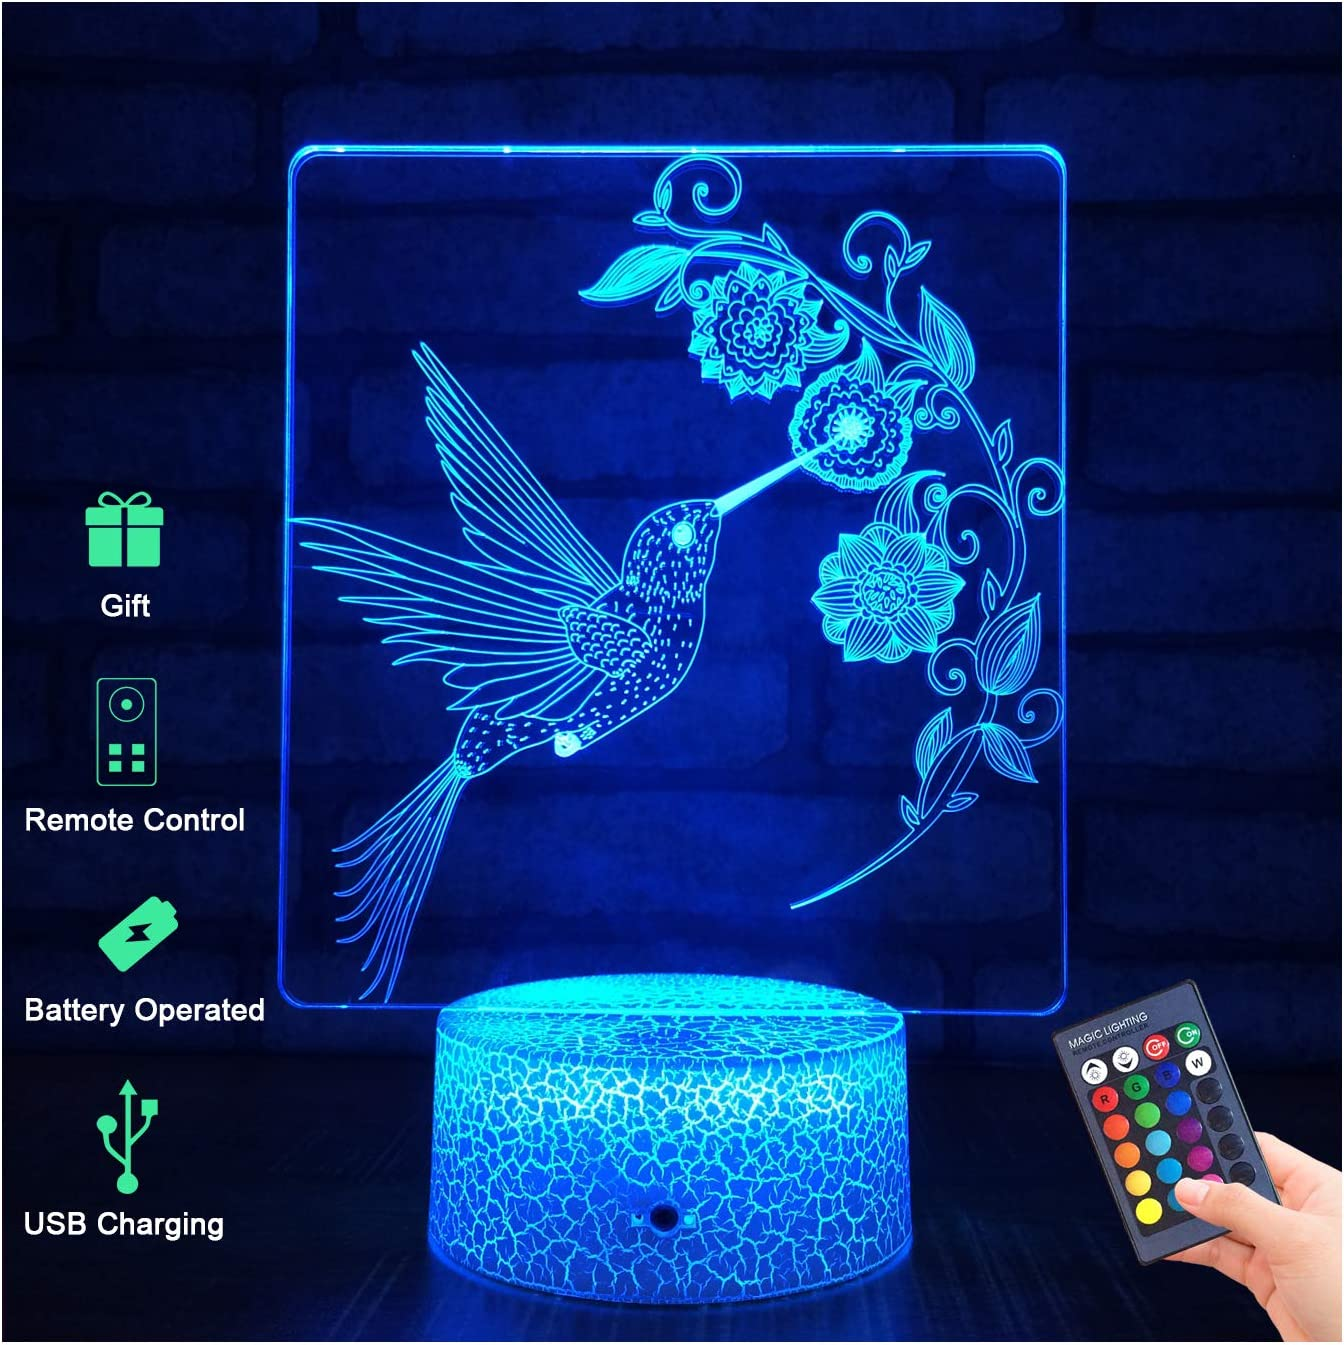 Menzee 3D Hummingbird Lamp, 3D Night Light for Kids with Remote Control & Smart Touch 7 Colors 16 Colors Changing Hummingbird Toys 10 9 3 5 2 8 1 7 6 4 Year Old Boy Girl Gifts